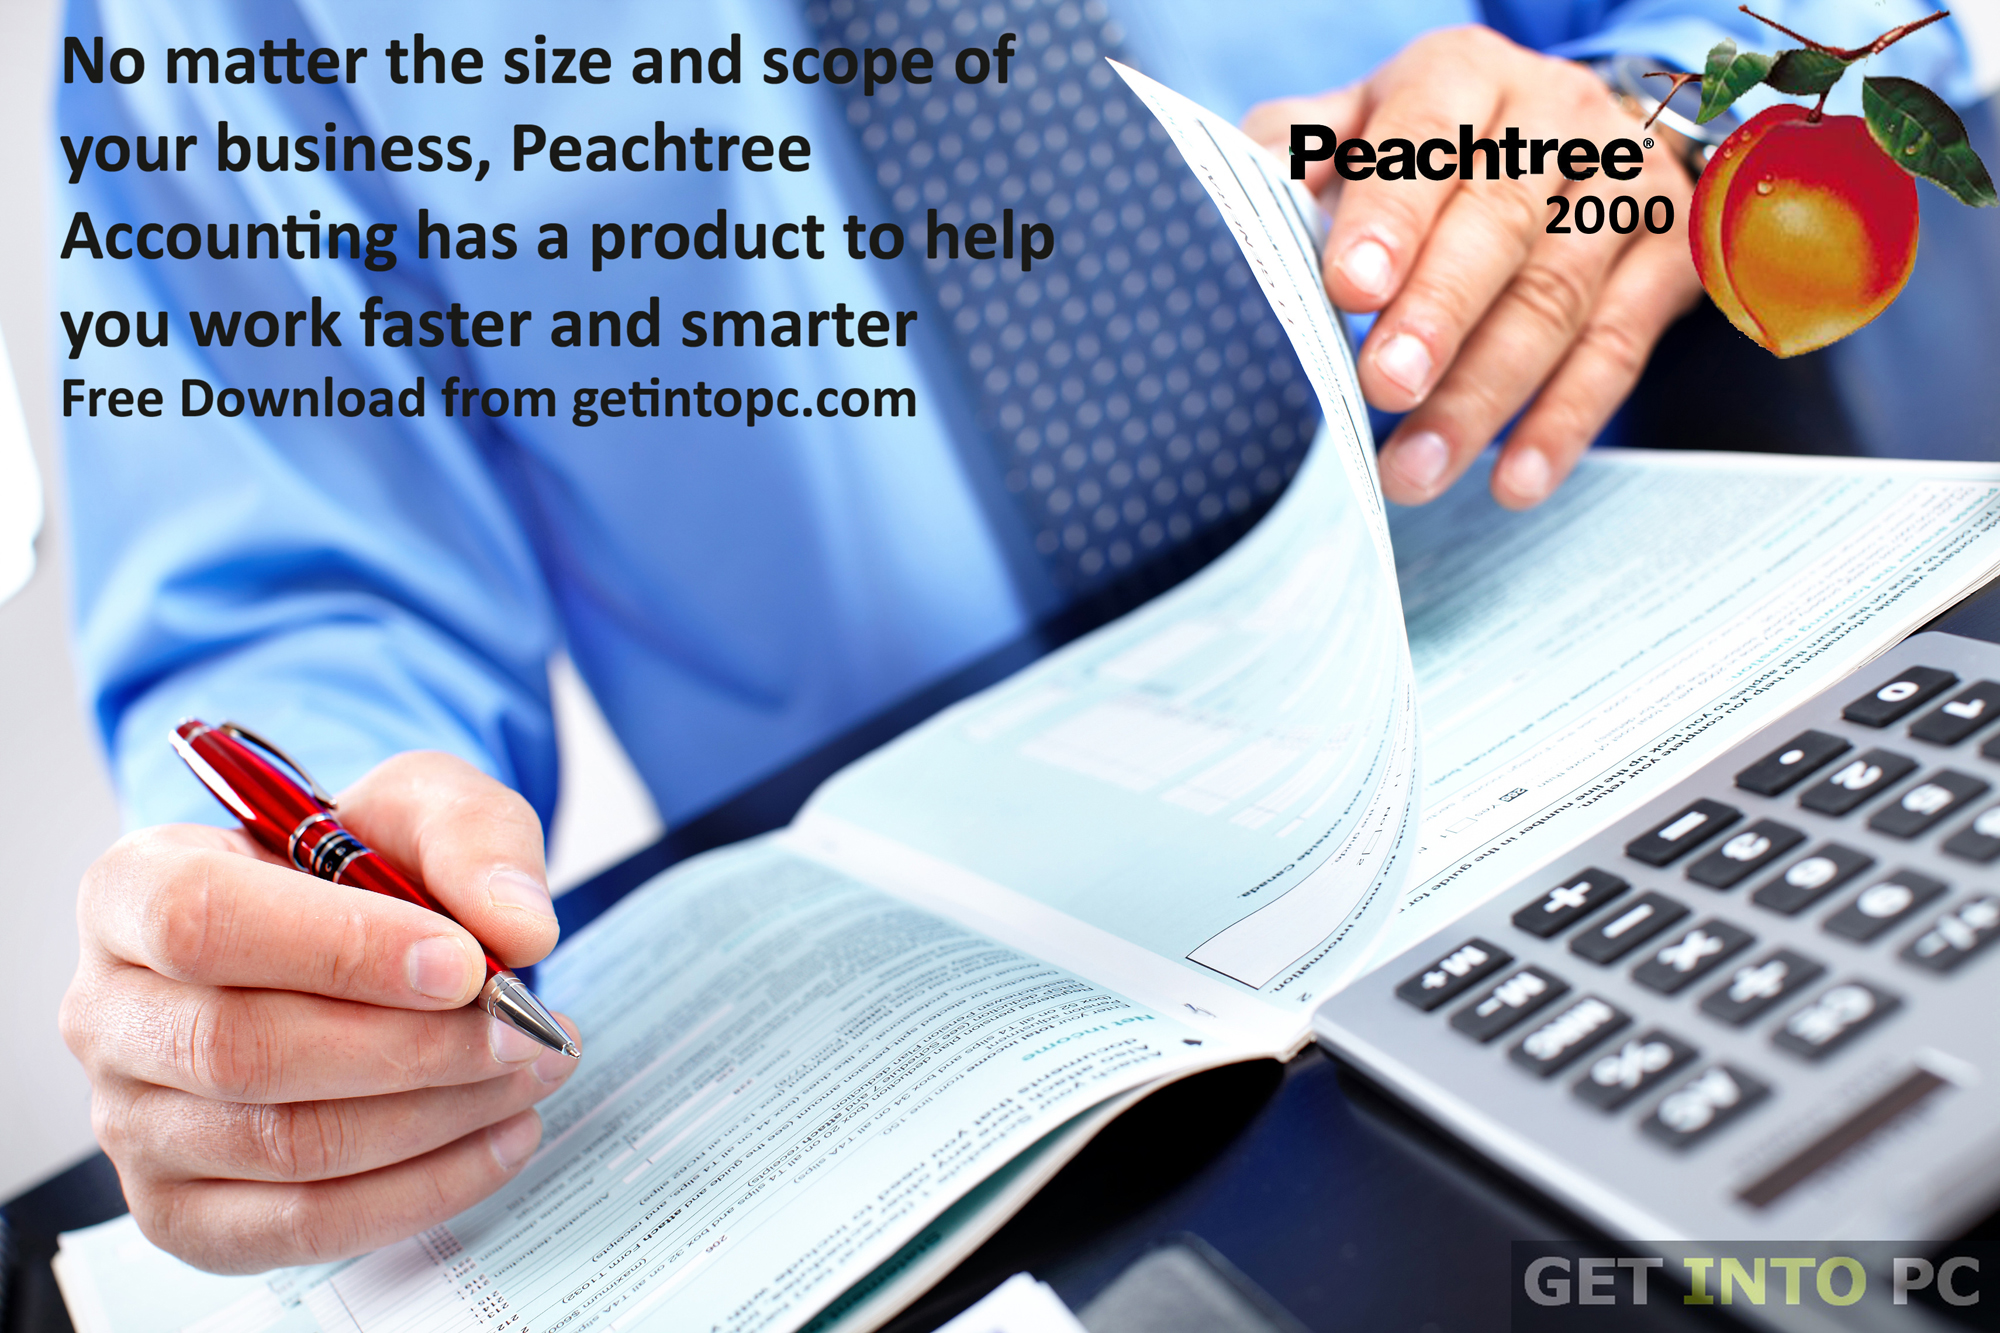 Peachtree 2000 Free Download